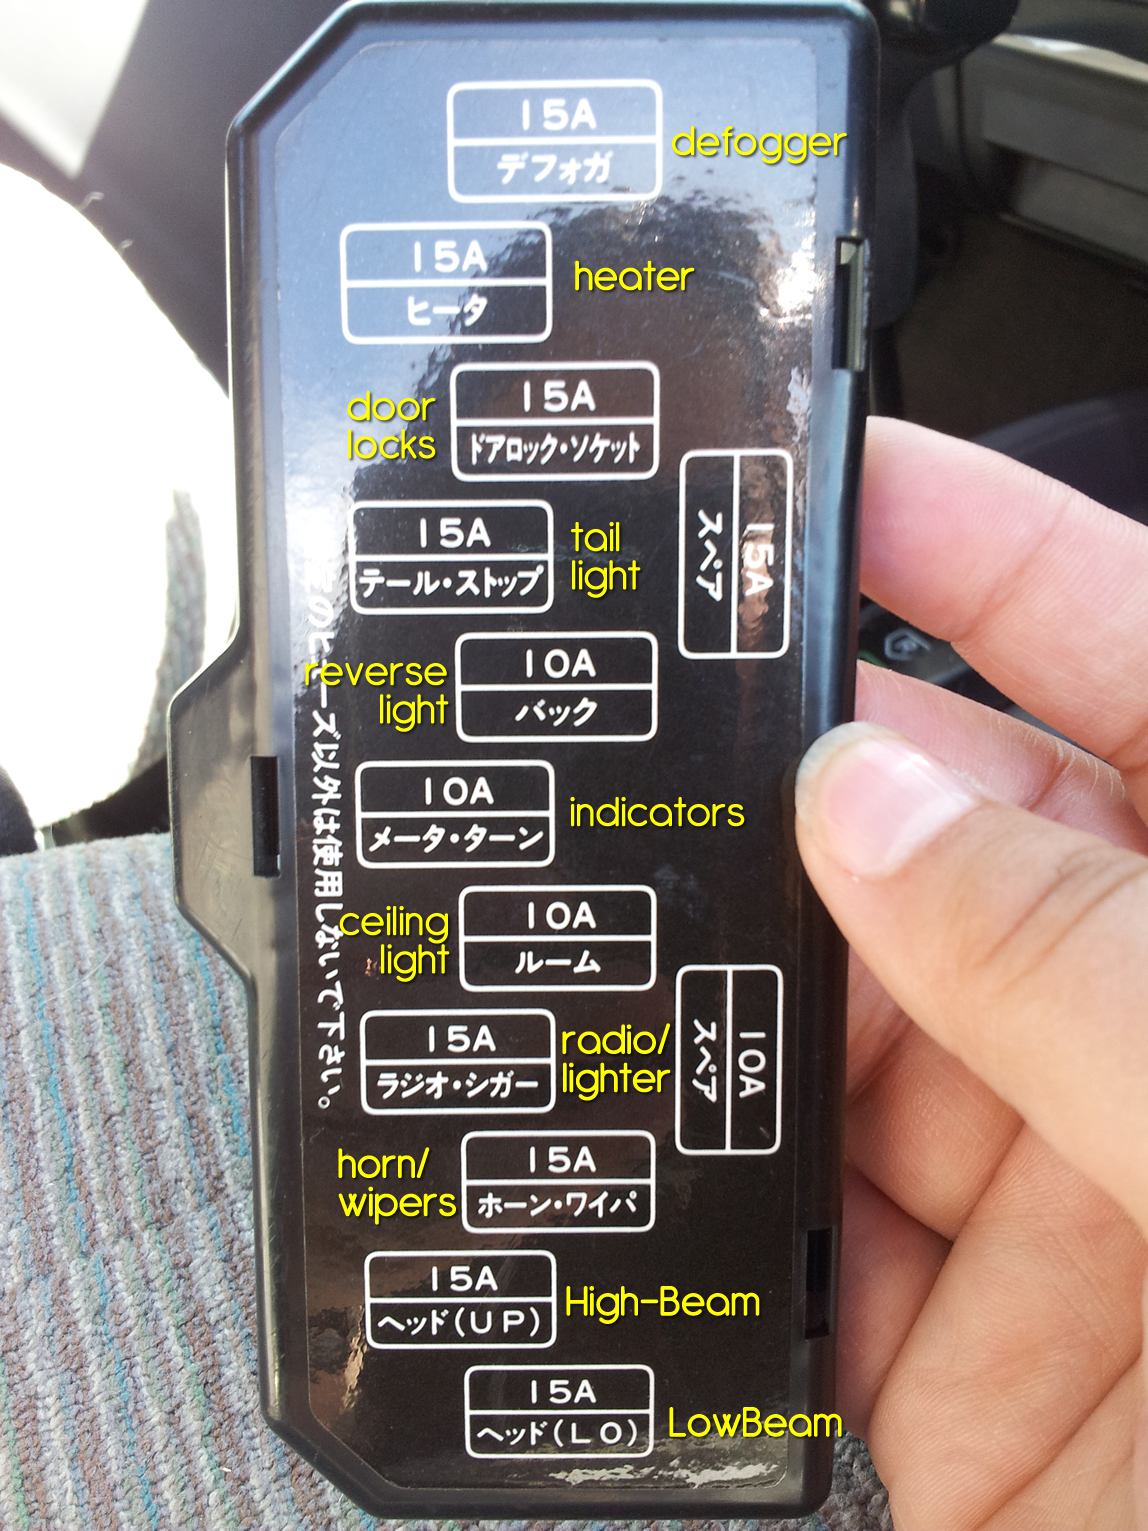 Just just in case anyone else out there needs it - here is the fuse diagram  for a 1996 Mitsubishi Pajero Jnr: